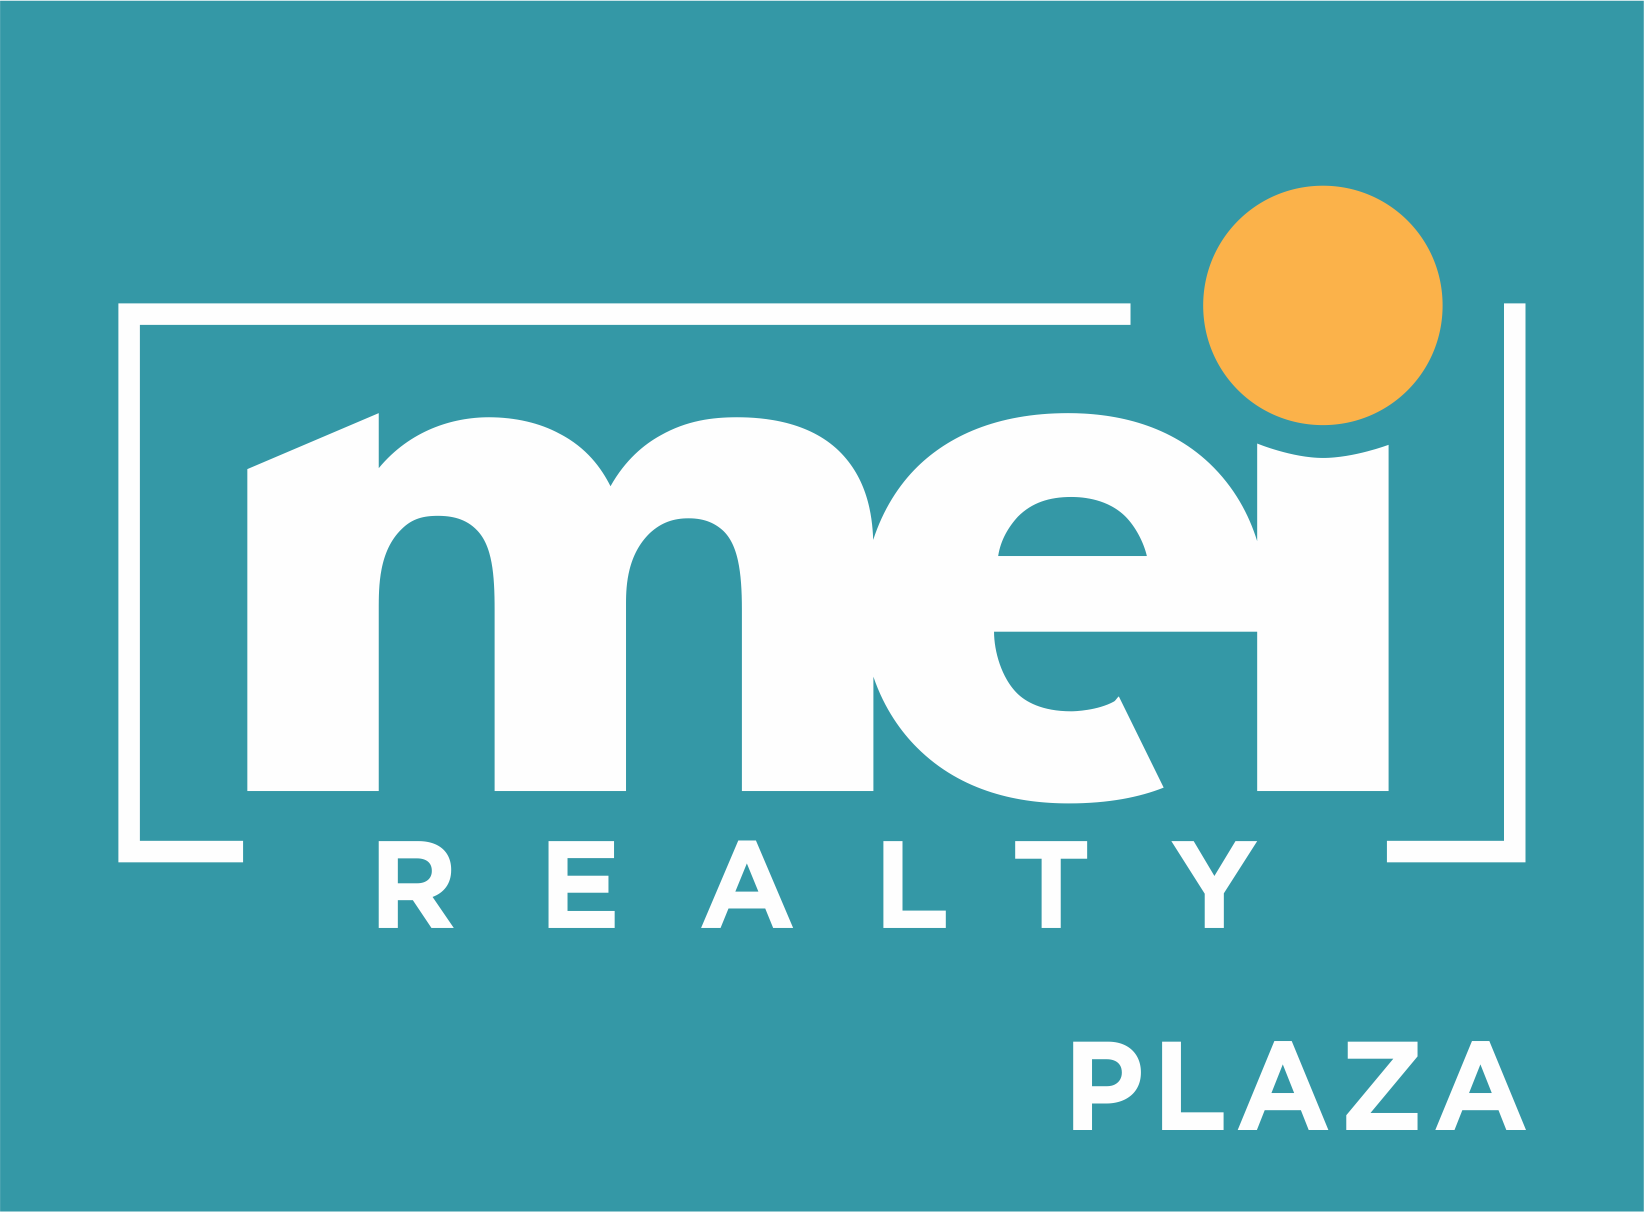 Mei realty Plaza